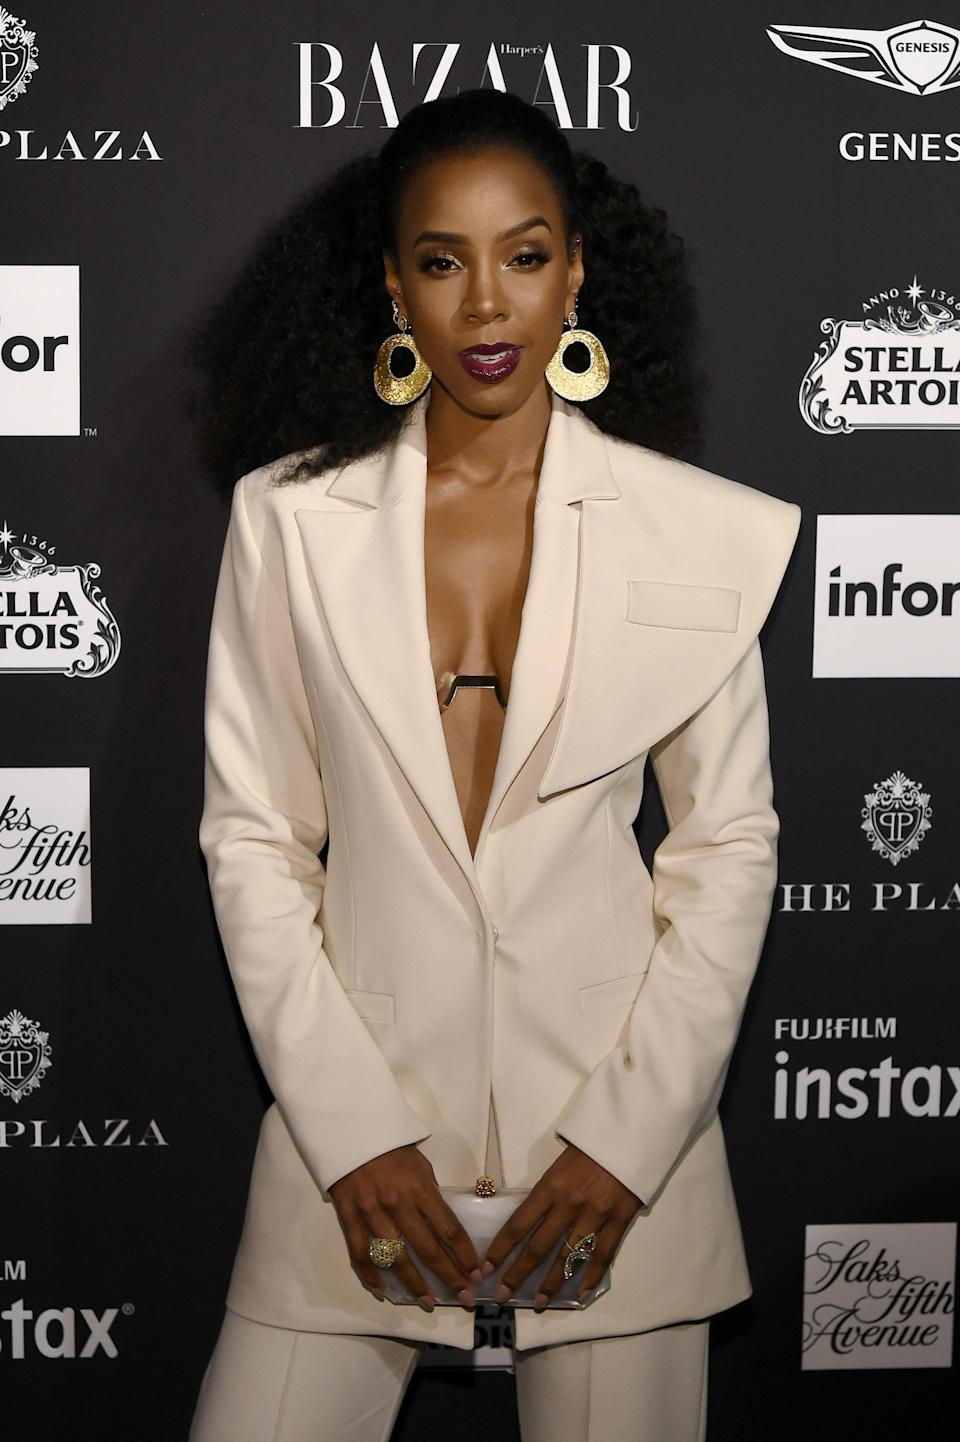 "<p>Singer Kelly Rowland revealed during an interview with <em><a href=""https://www.shape.com/"" rel=""nofollow noopener"" target=""_blank"" data-ylk=""slk:Shape"" class=""link rapid-noclick-resp"">Shape</a></em> that she wanted to have breast implants at the age of 18 but her mum (and Beyonce's mum) wanted her to really think about it first. ""I took their advice and waited 10 years,"" she said. ""Once I felt ready, I tried on padded bras and walked around in them to see how it would feel. You have to know what you're getting – no matter what type of surgery it is."" <em>[Photo: Getty]</em> </p>"